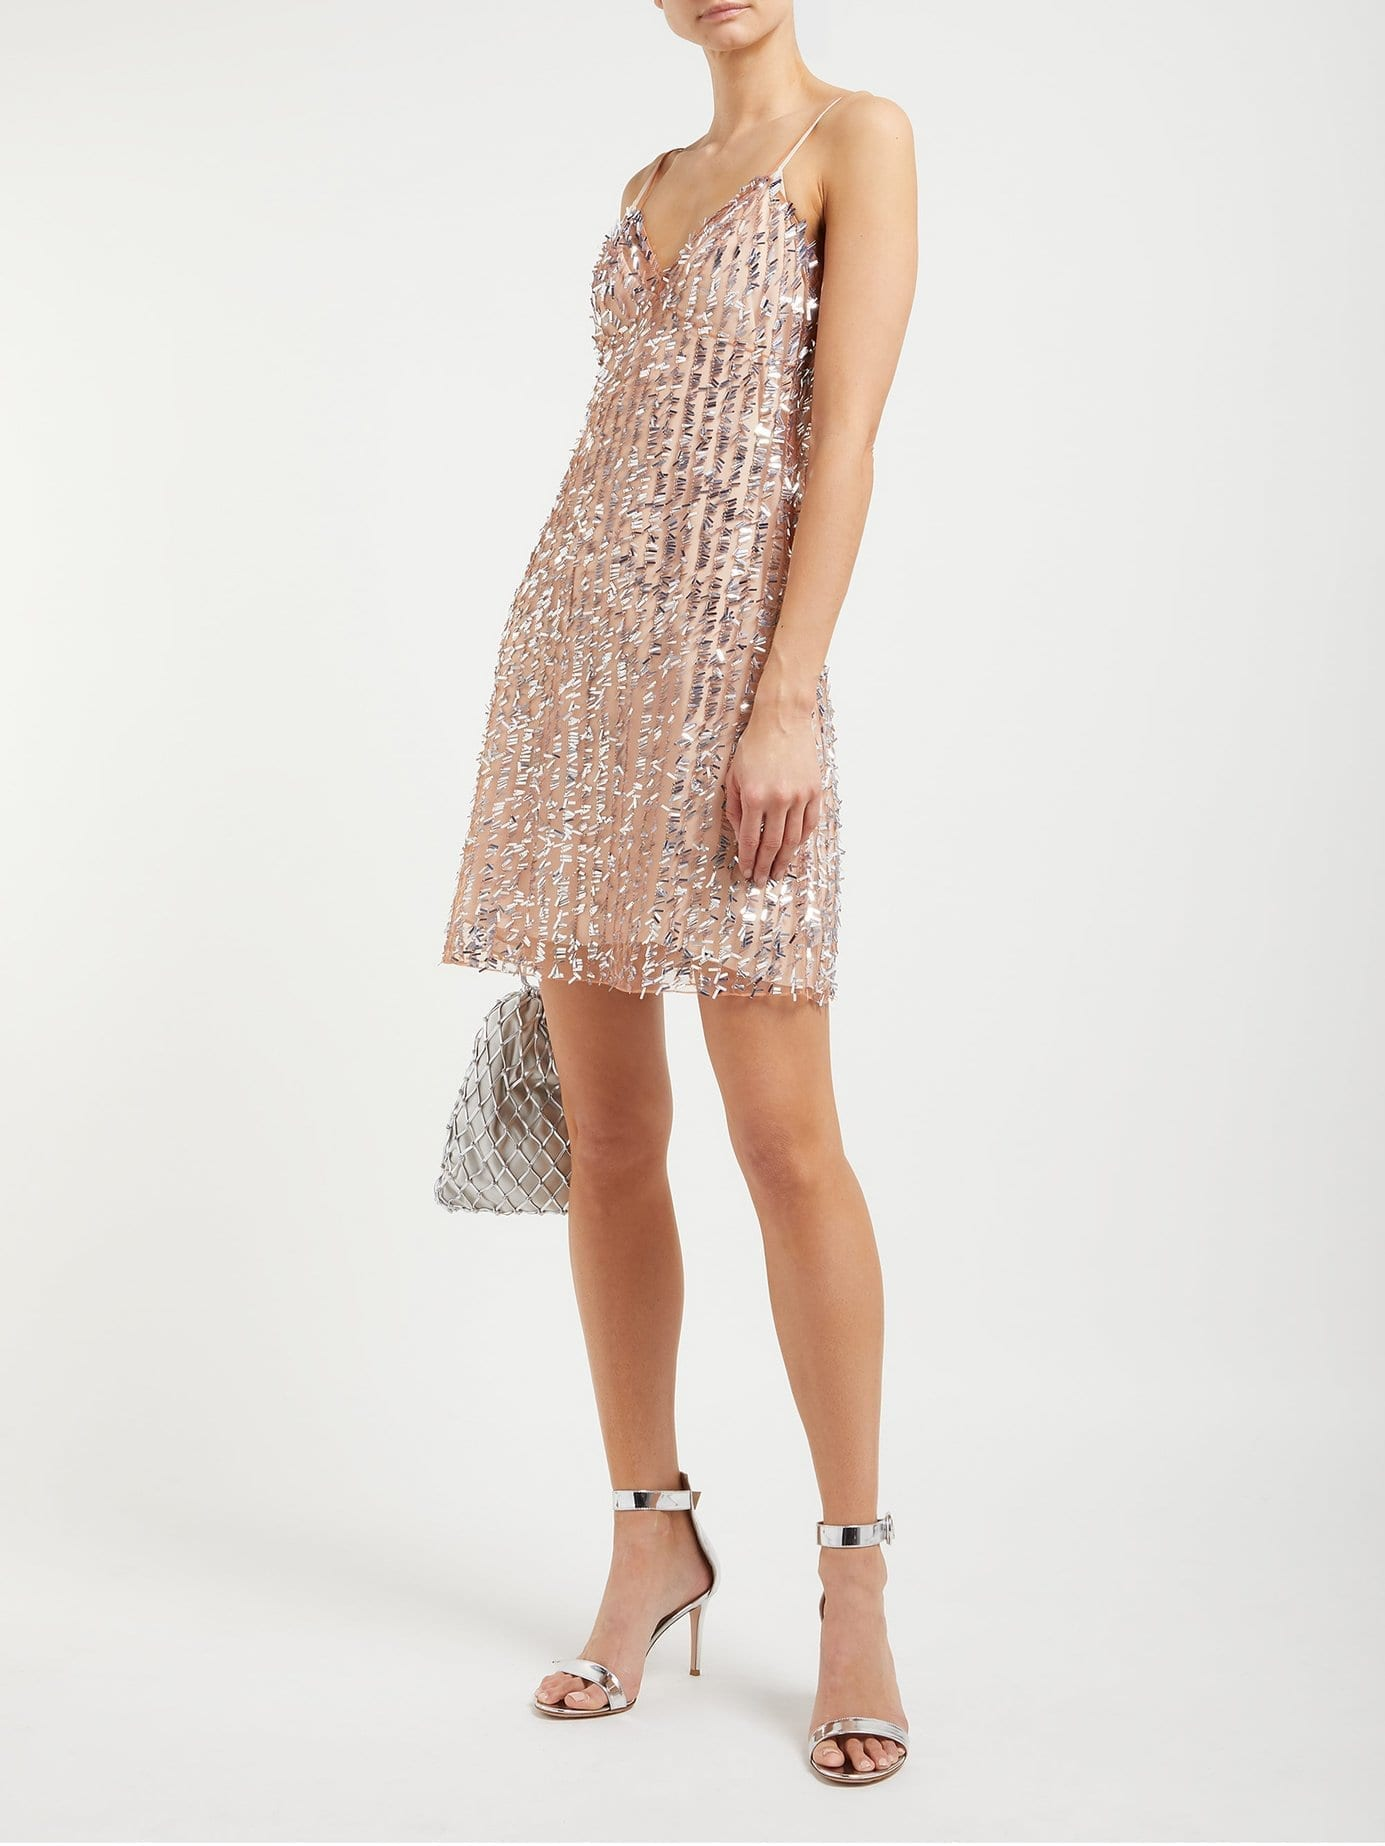 ASHISH Sequin-Embellished Sheer Slip Beige Dress